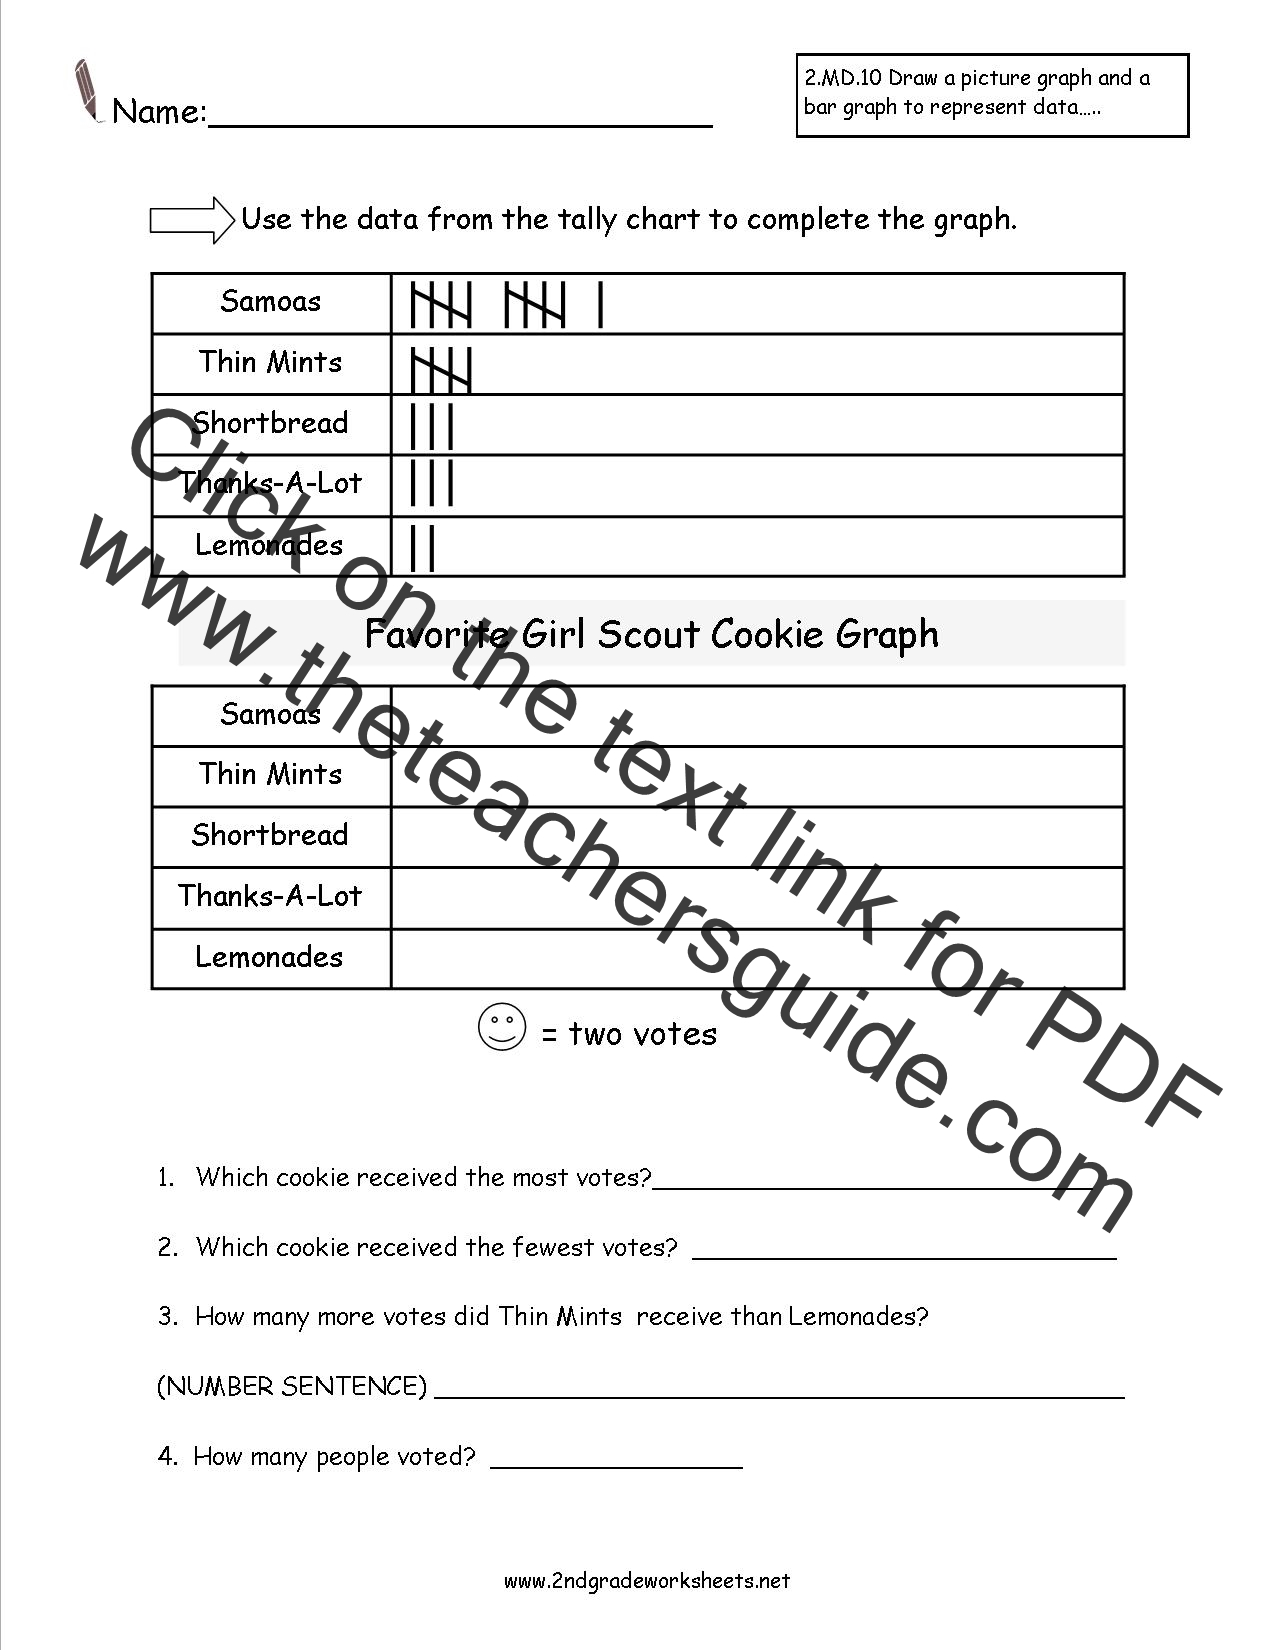 Worksheets Pictograph Worksheets 3rd Grade second grade reading and creating pictograph worksheets favorite girl scout cookie pictograph